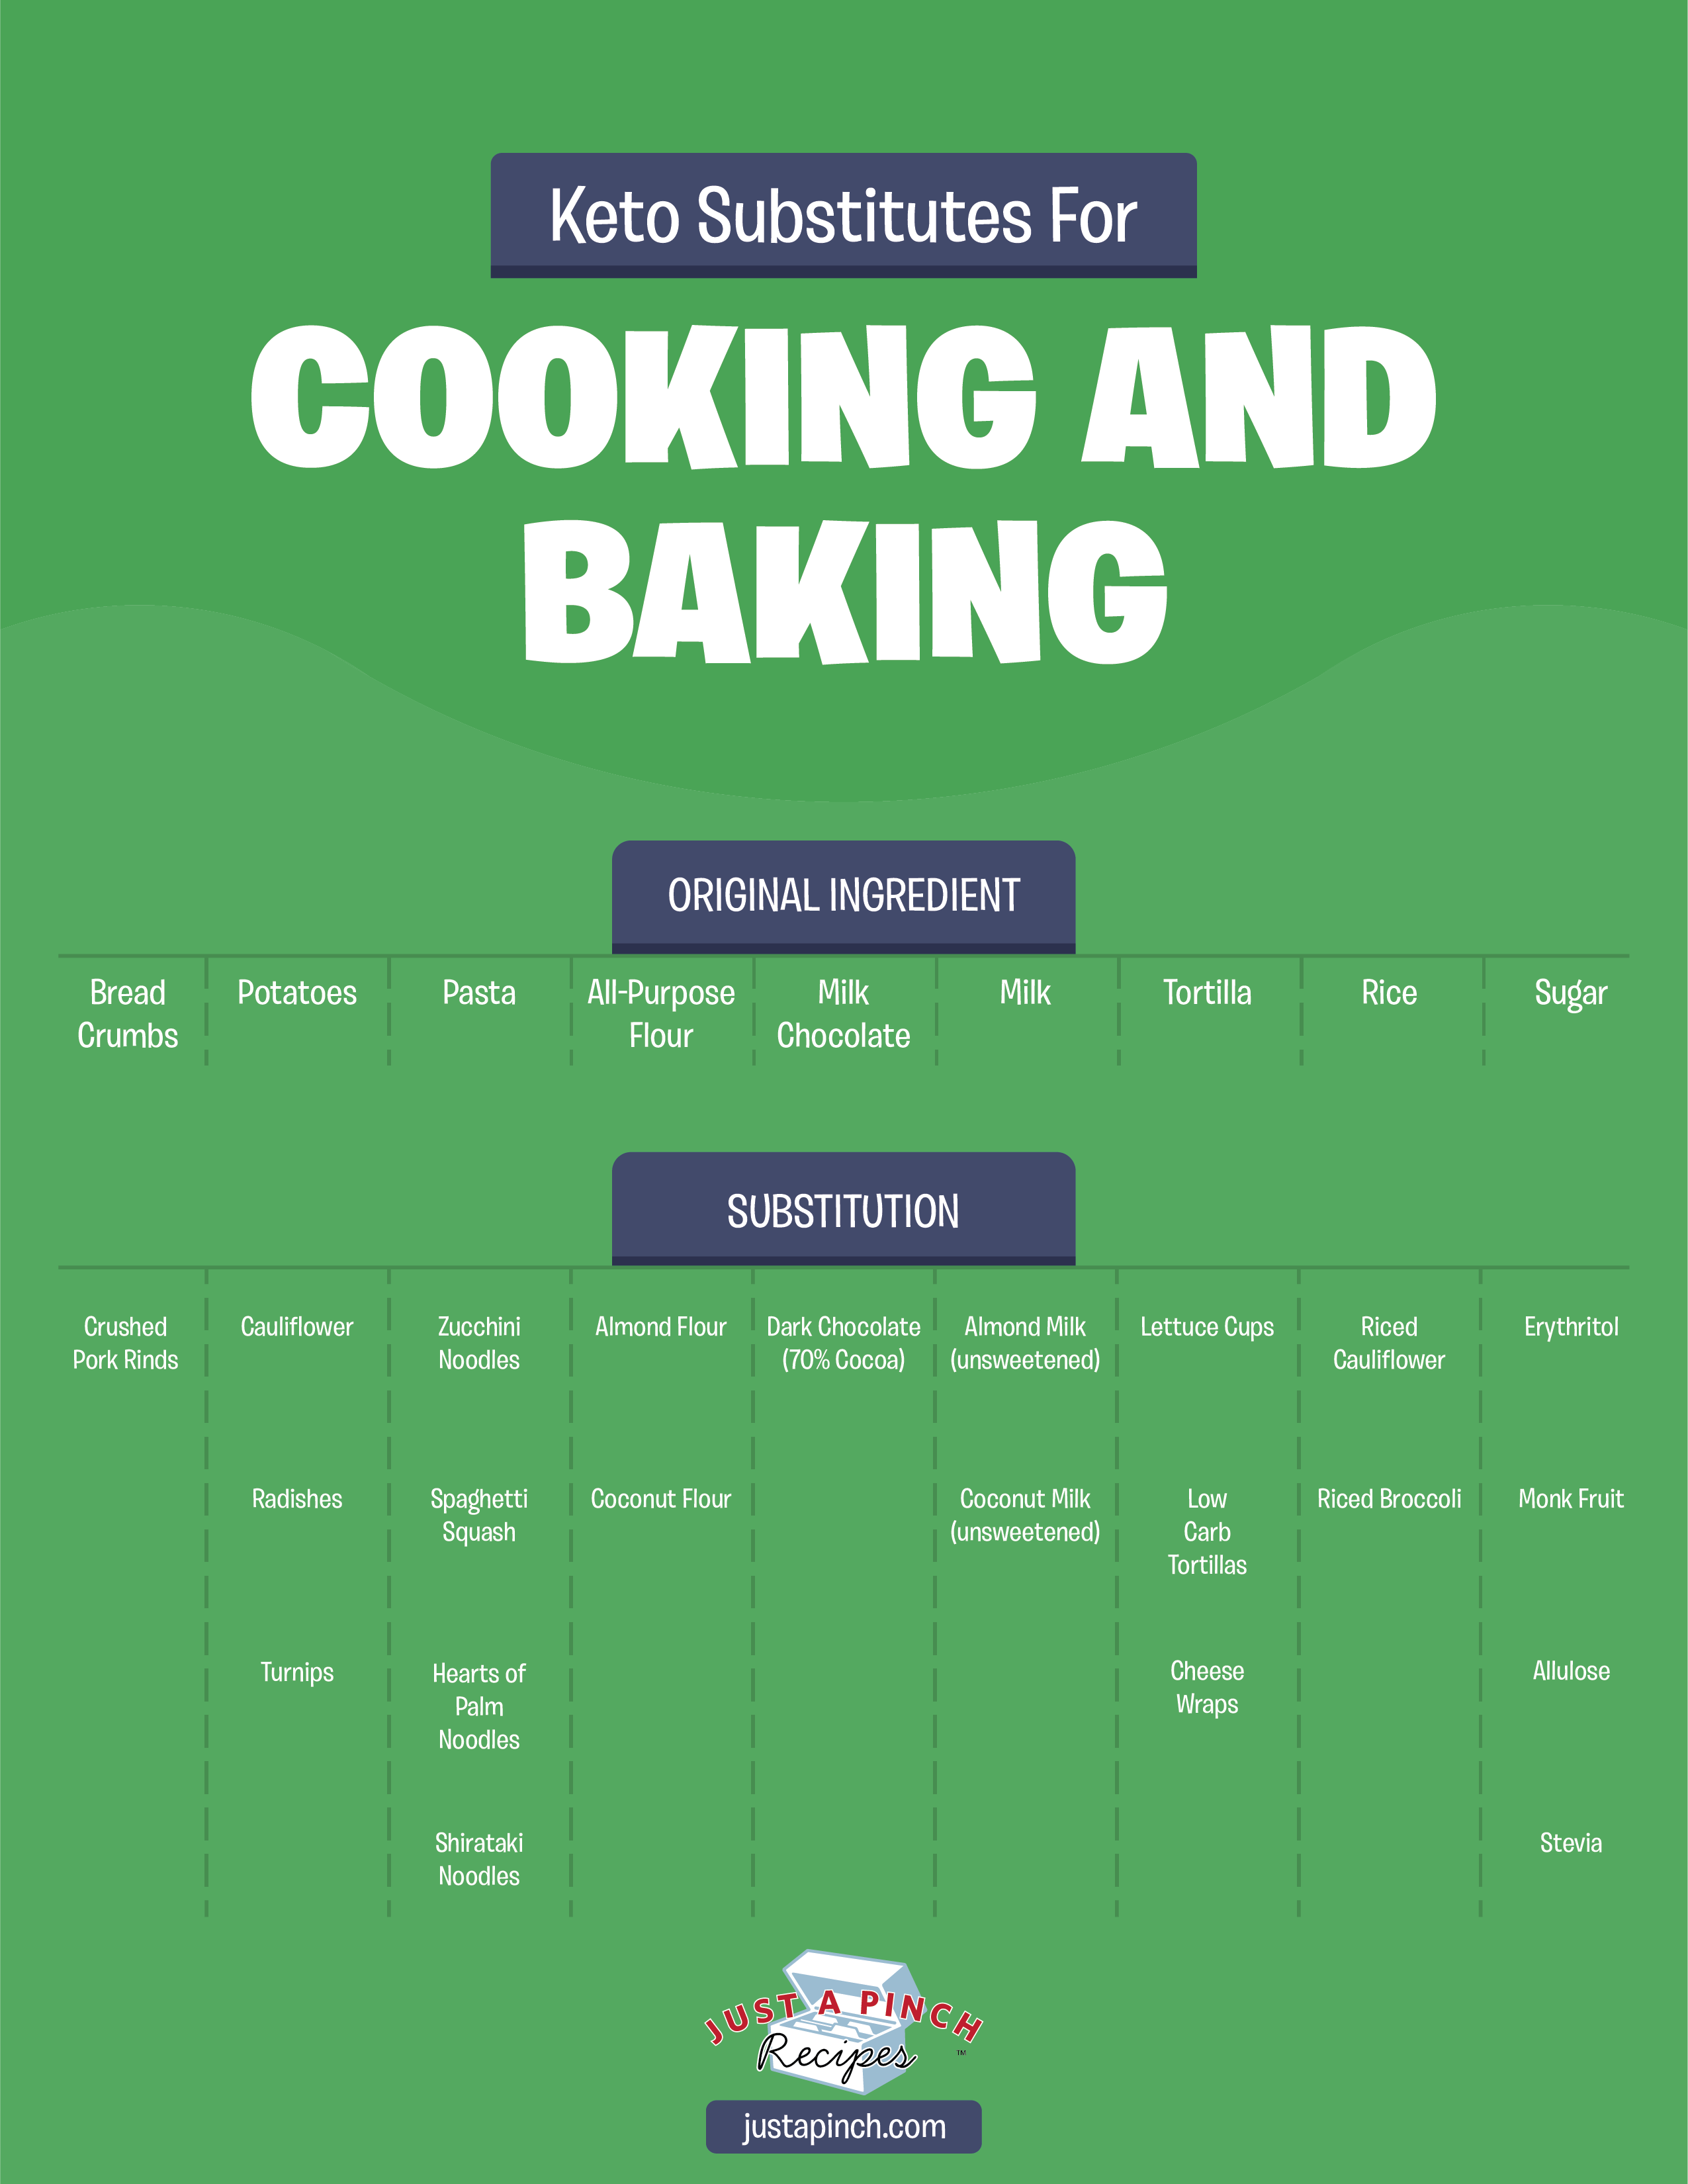 keto substitutes for cooking and baking